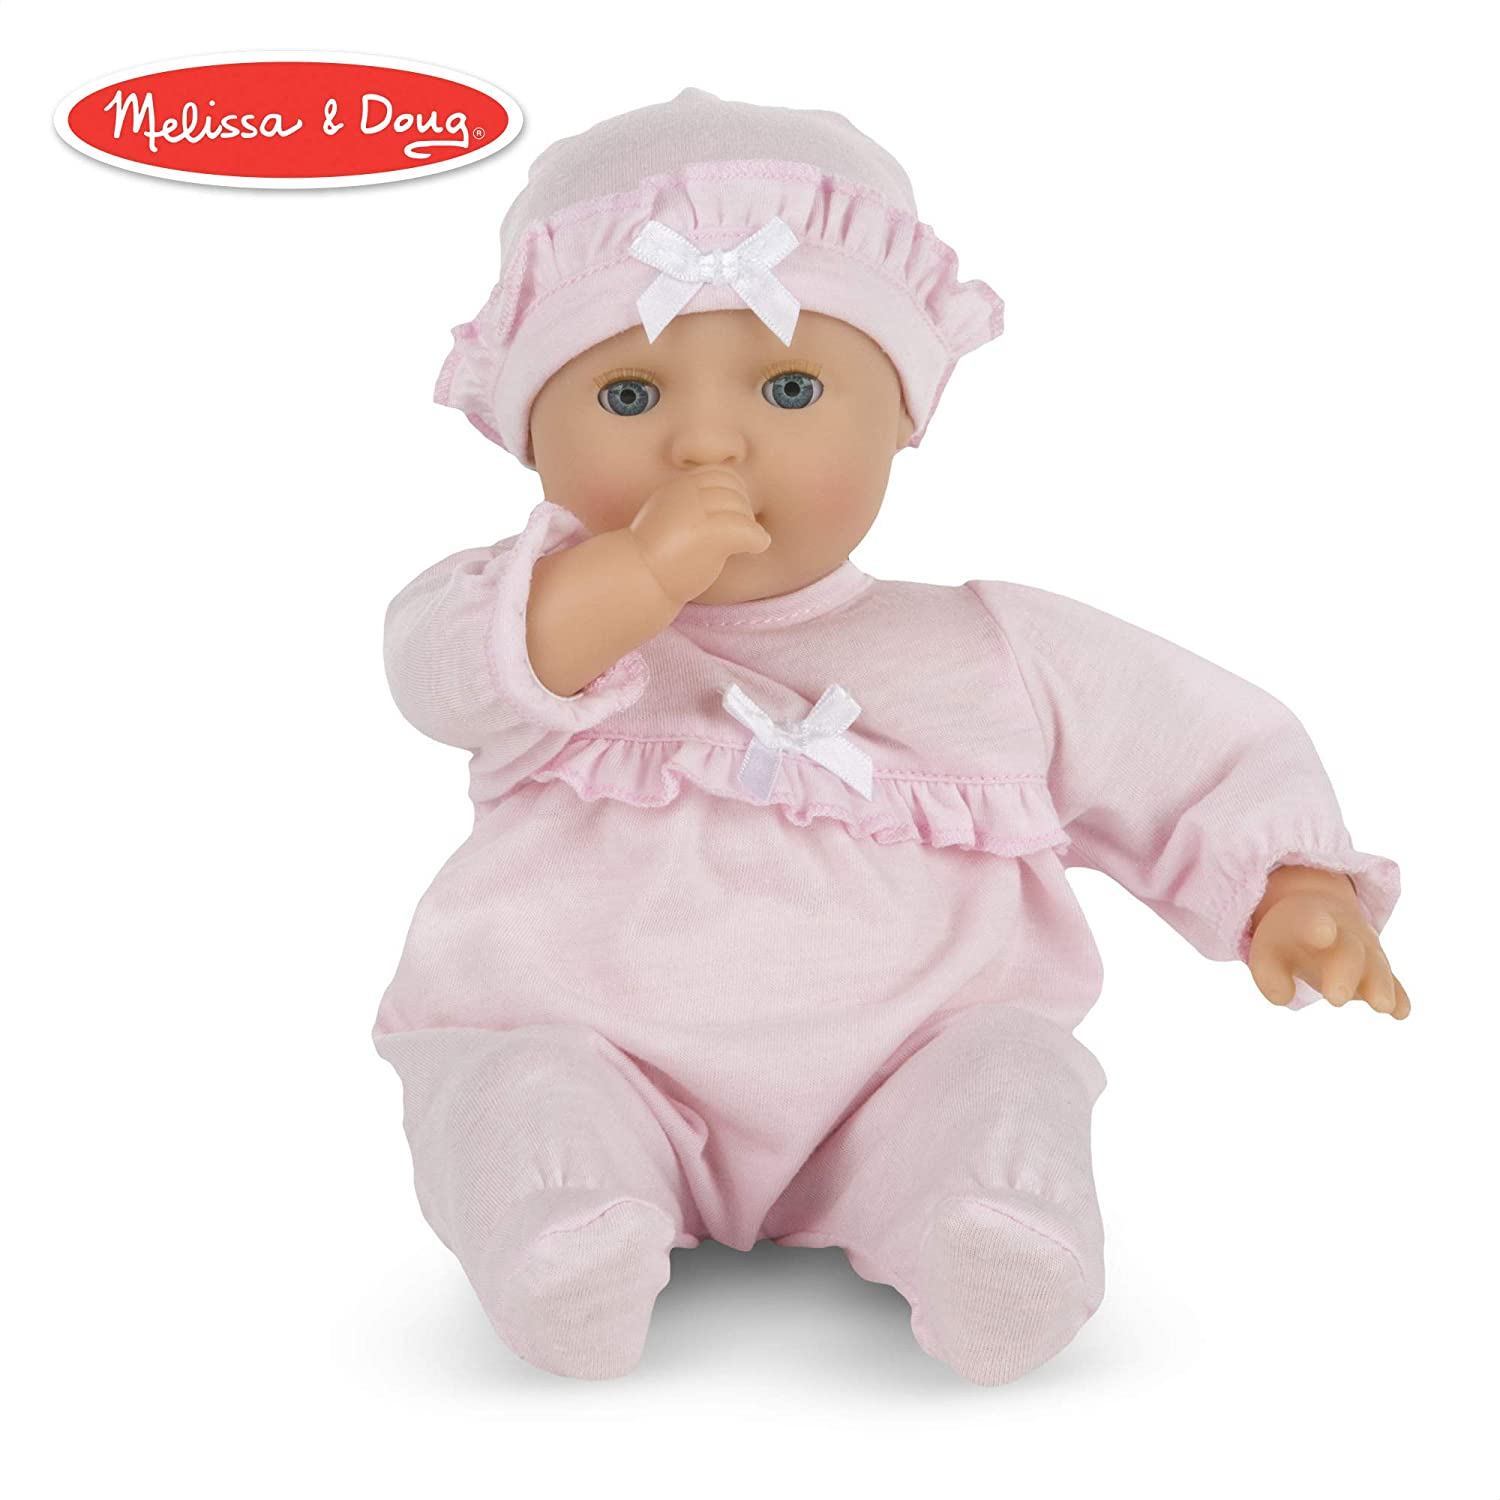 Melissa & Doug Mine to Love Jenna 12-Inch Soft Body Baby Doll, Romper and Hat Included